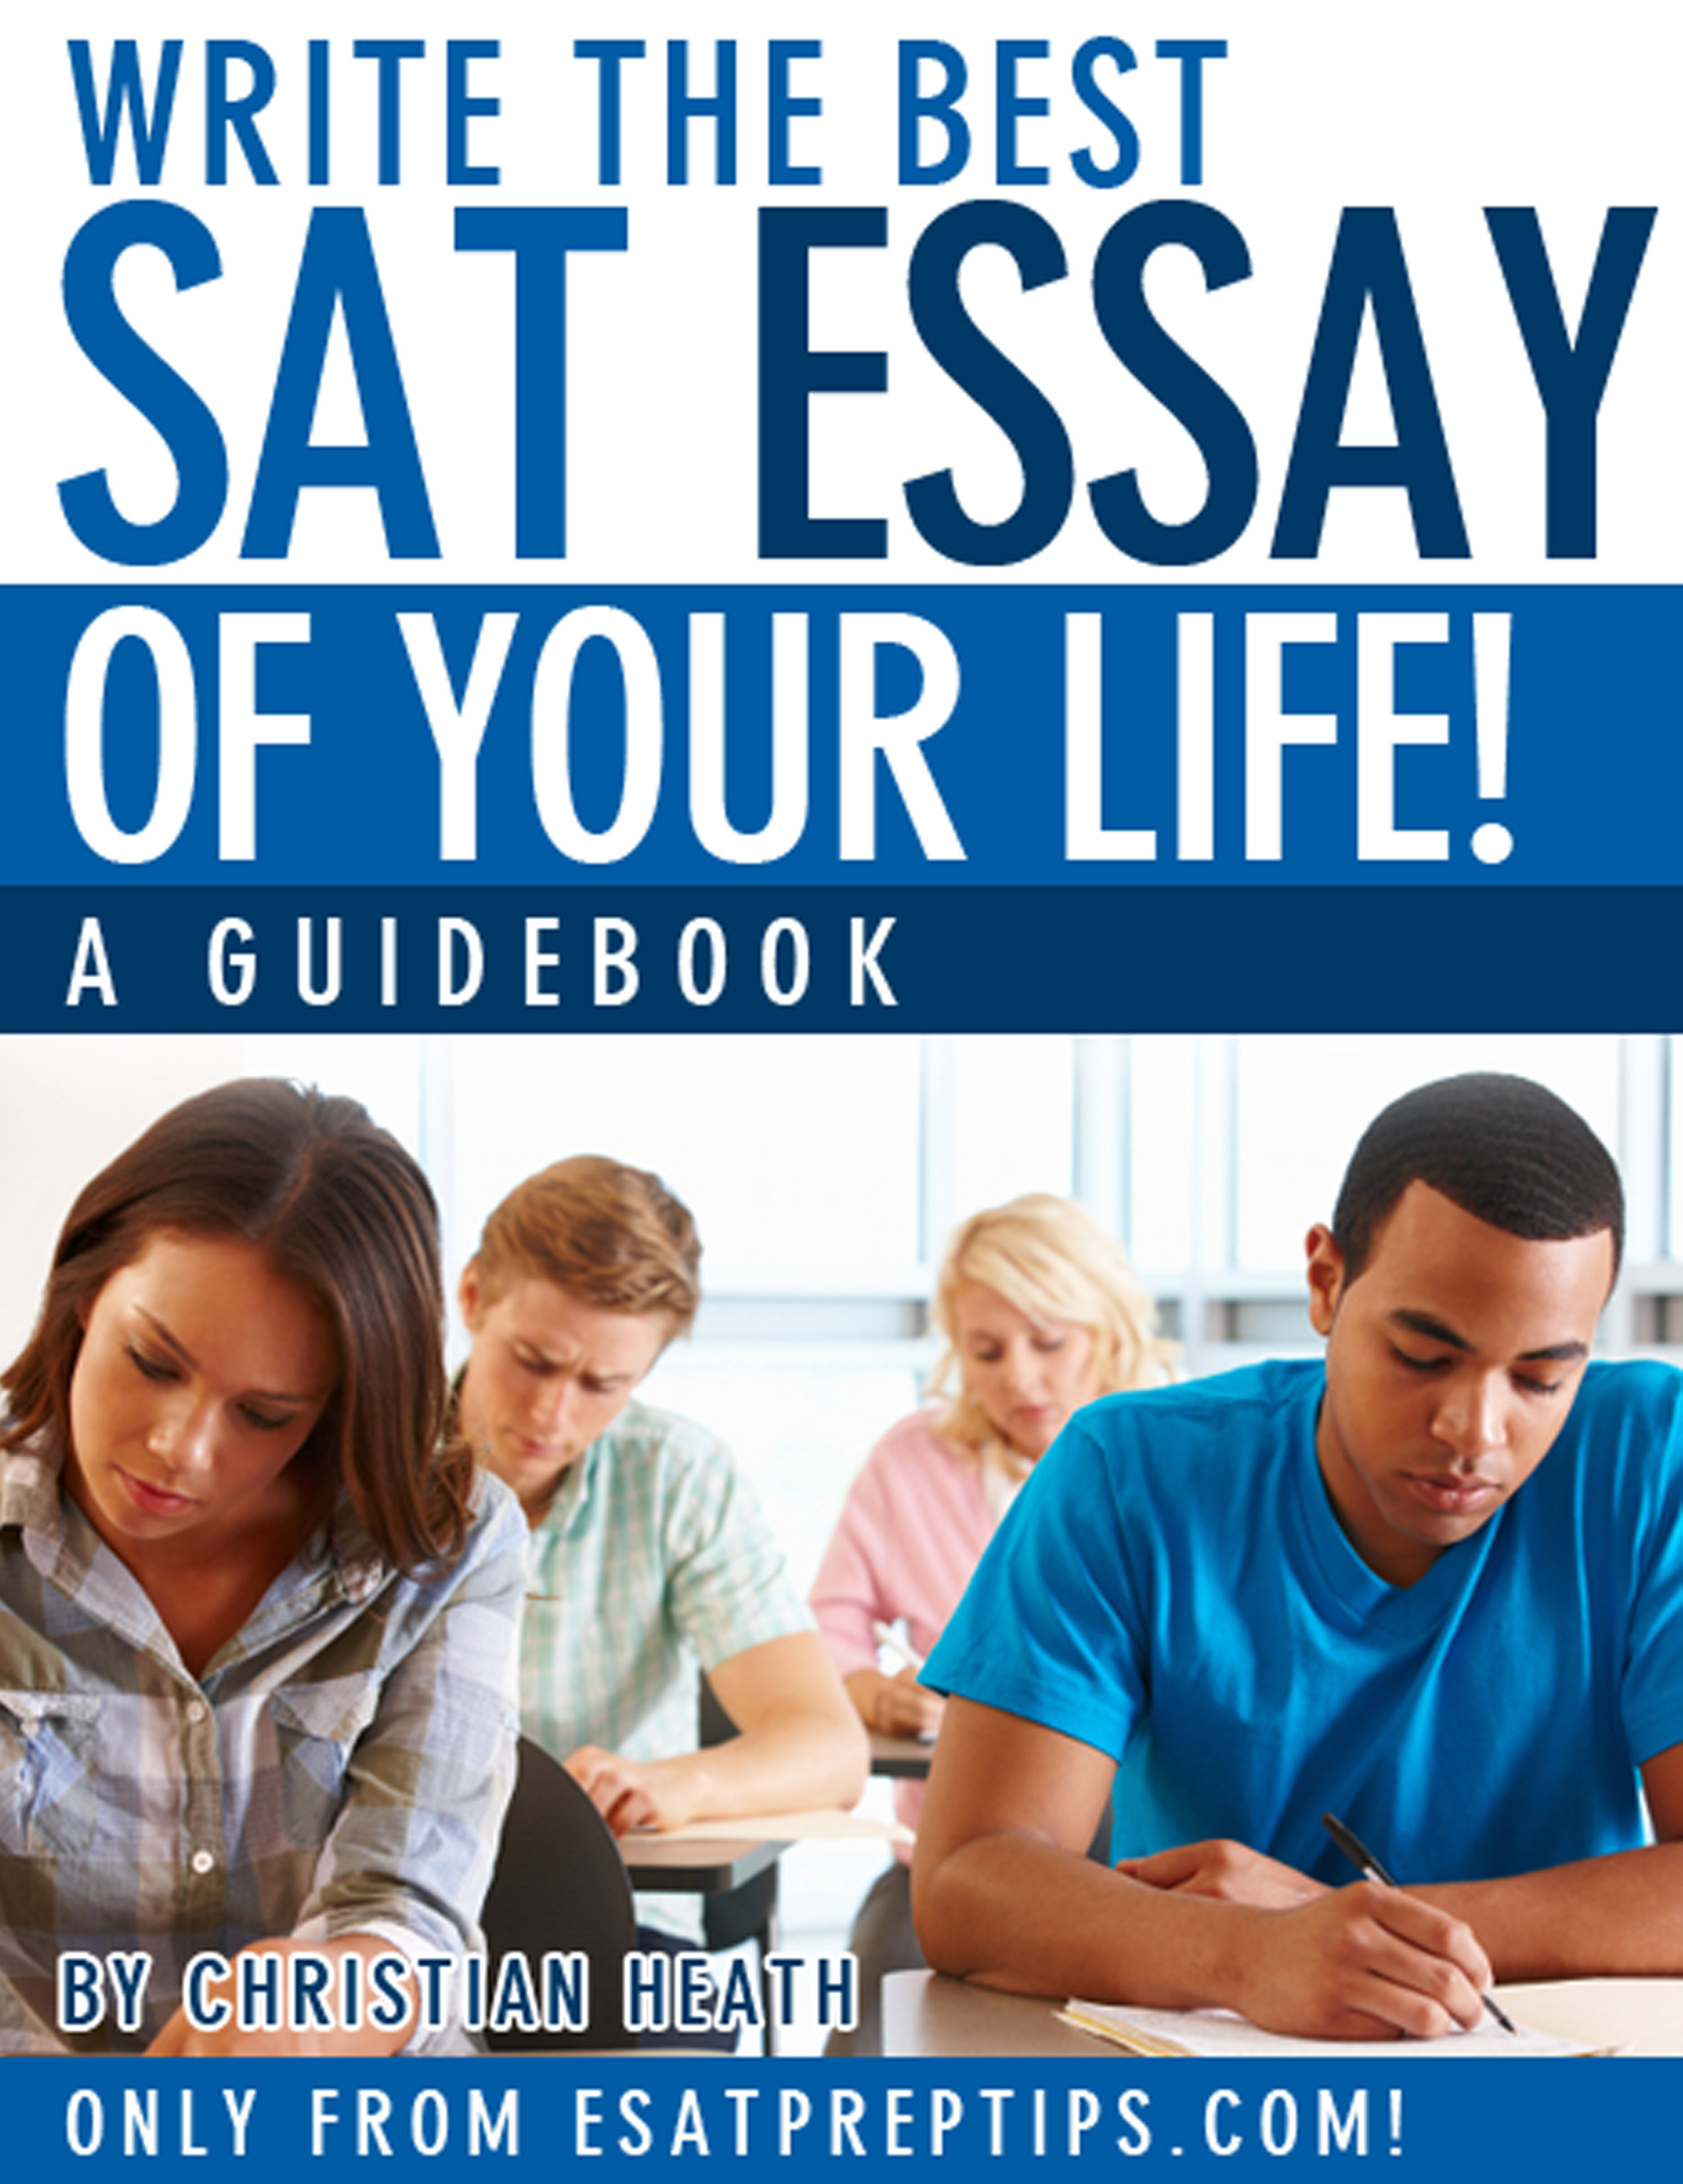 028 Write The Best Sat Essay Of Your Life Writing Tips Fascinating Pdf Full